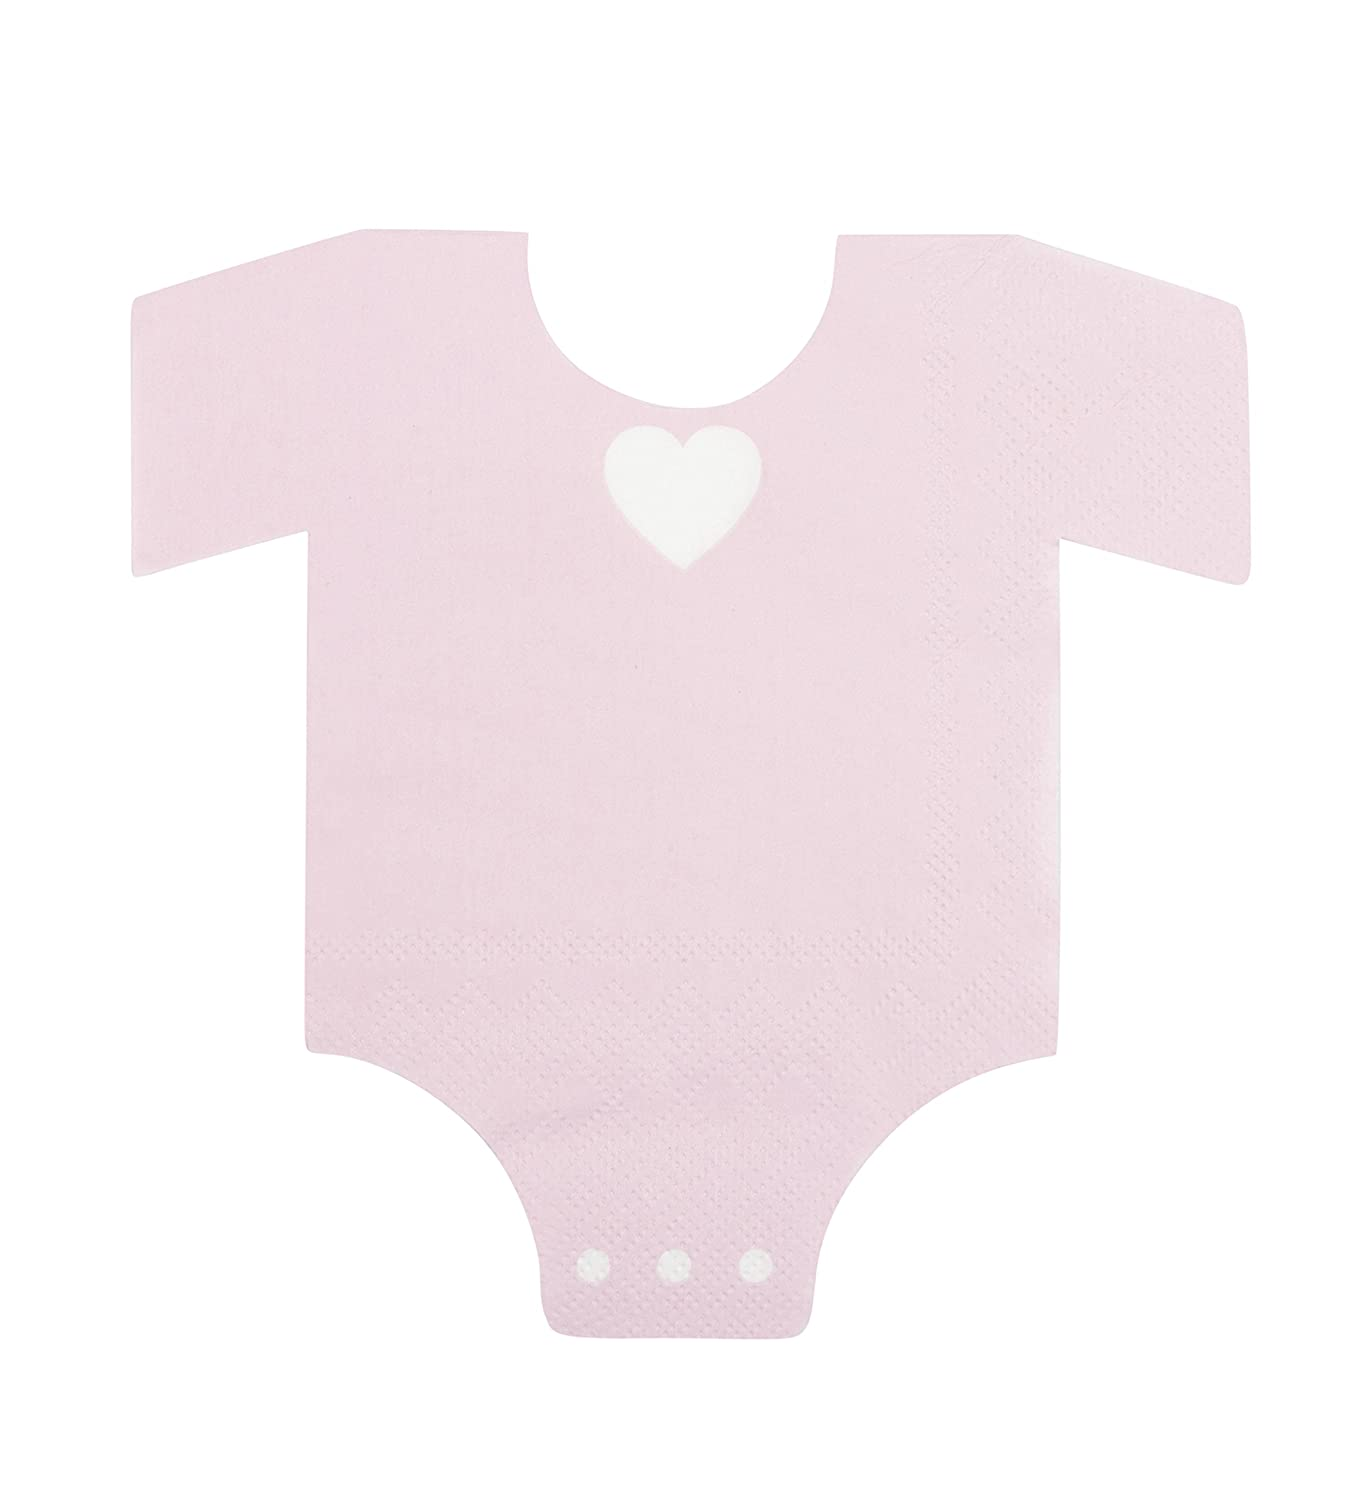 Blue Panda 50-Pack Die-Cut Light Pink Paper Baby Girl Shower Napkins, One Piece Outfit Design